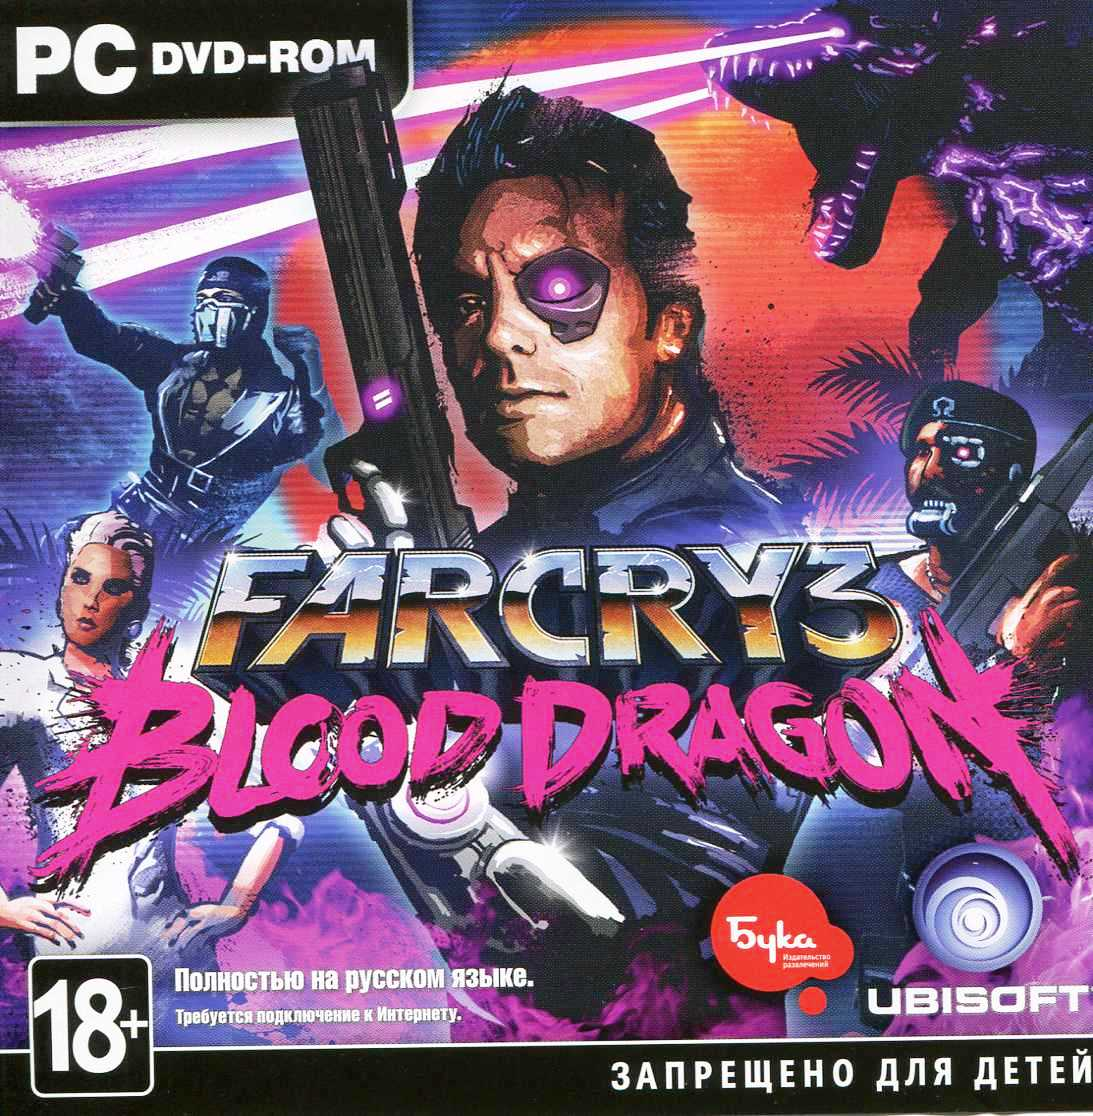 Far Cry 3 Blood Dragon Region Free (Uplay Buka) photo